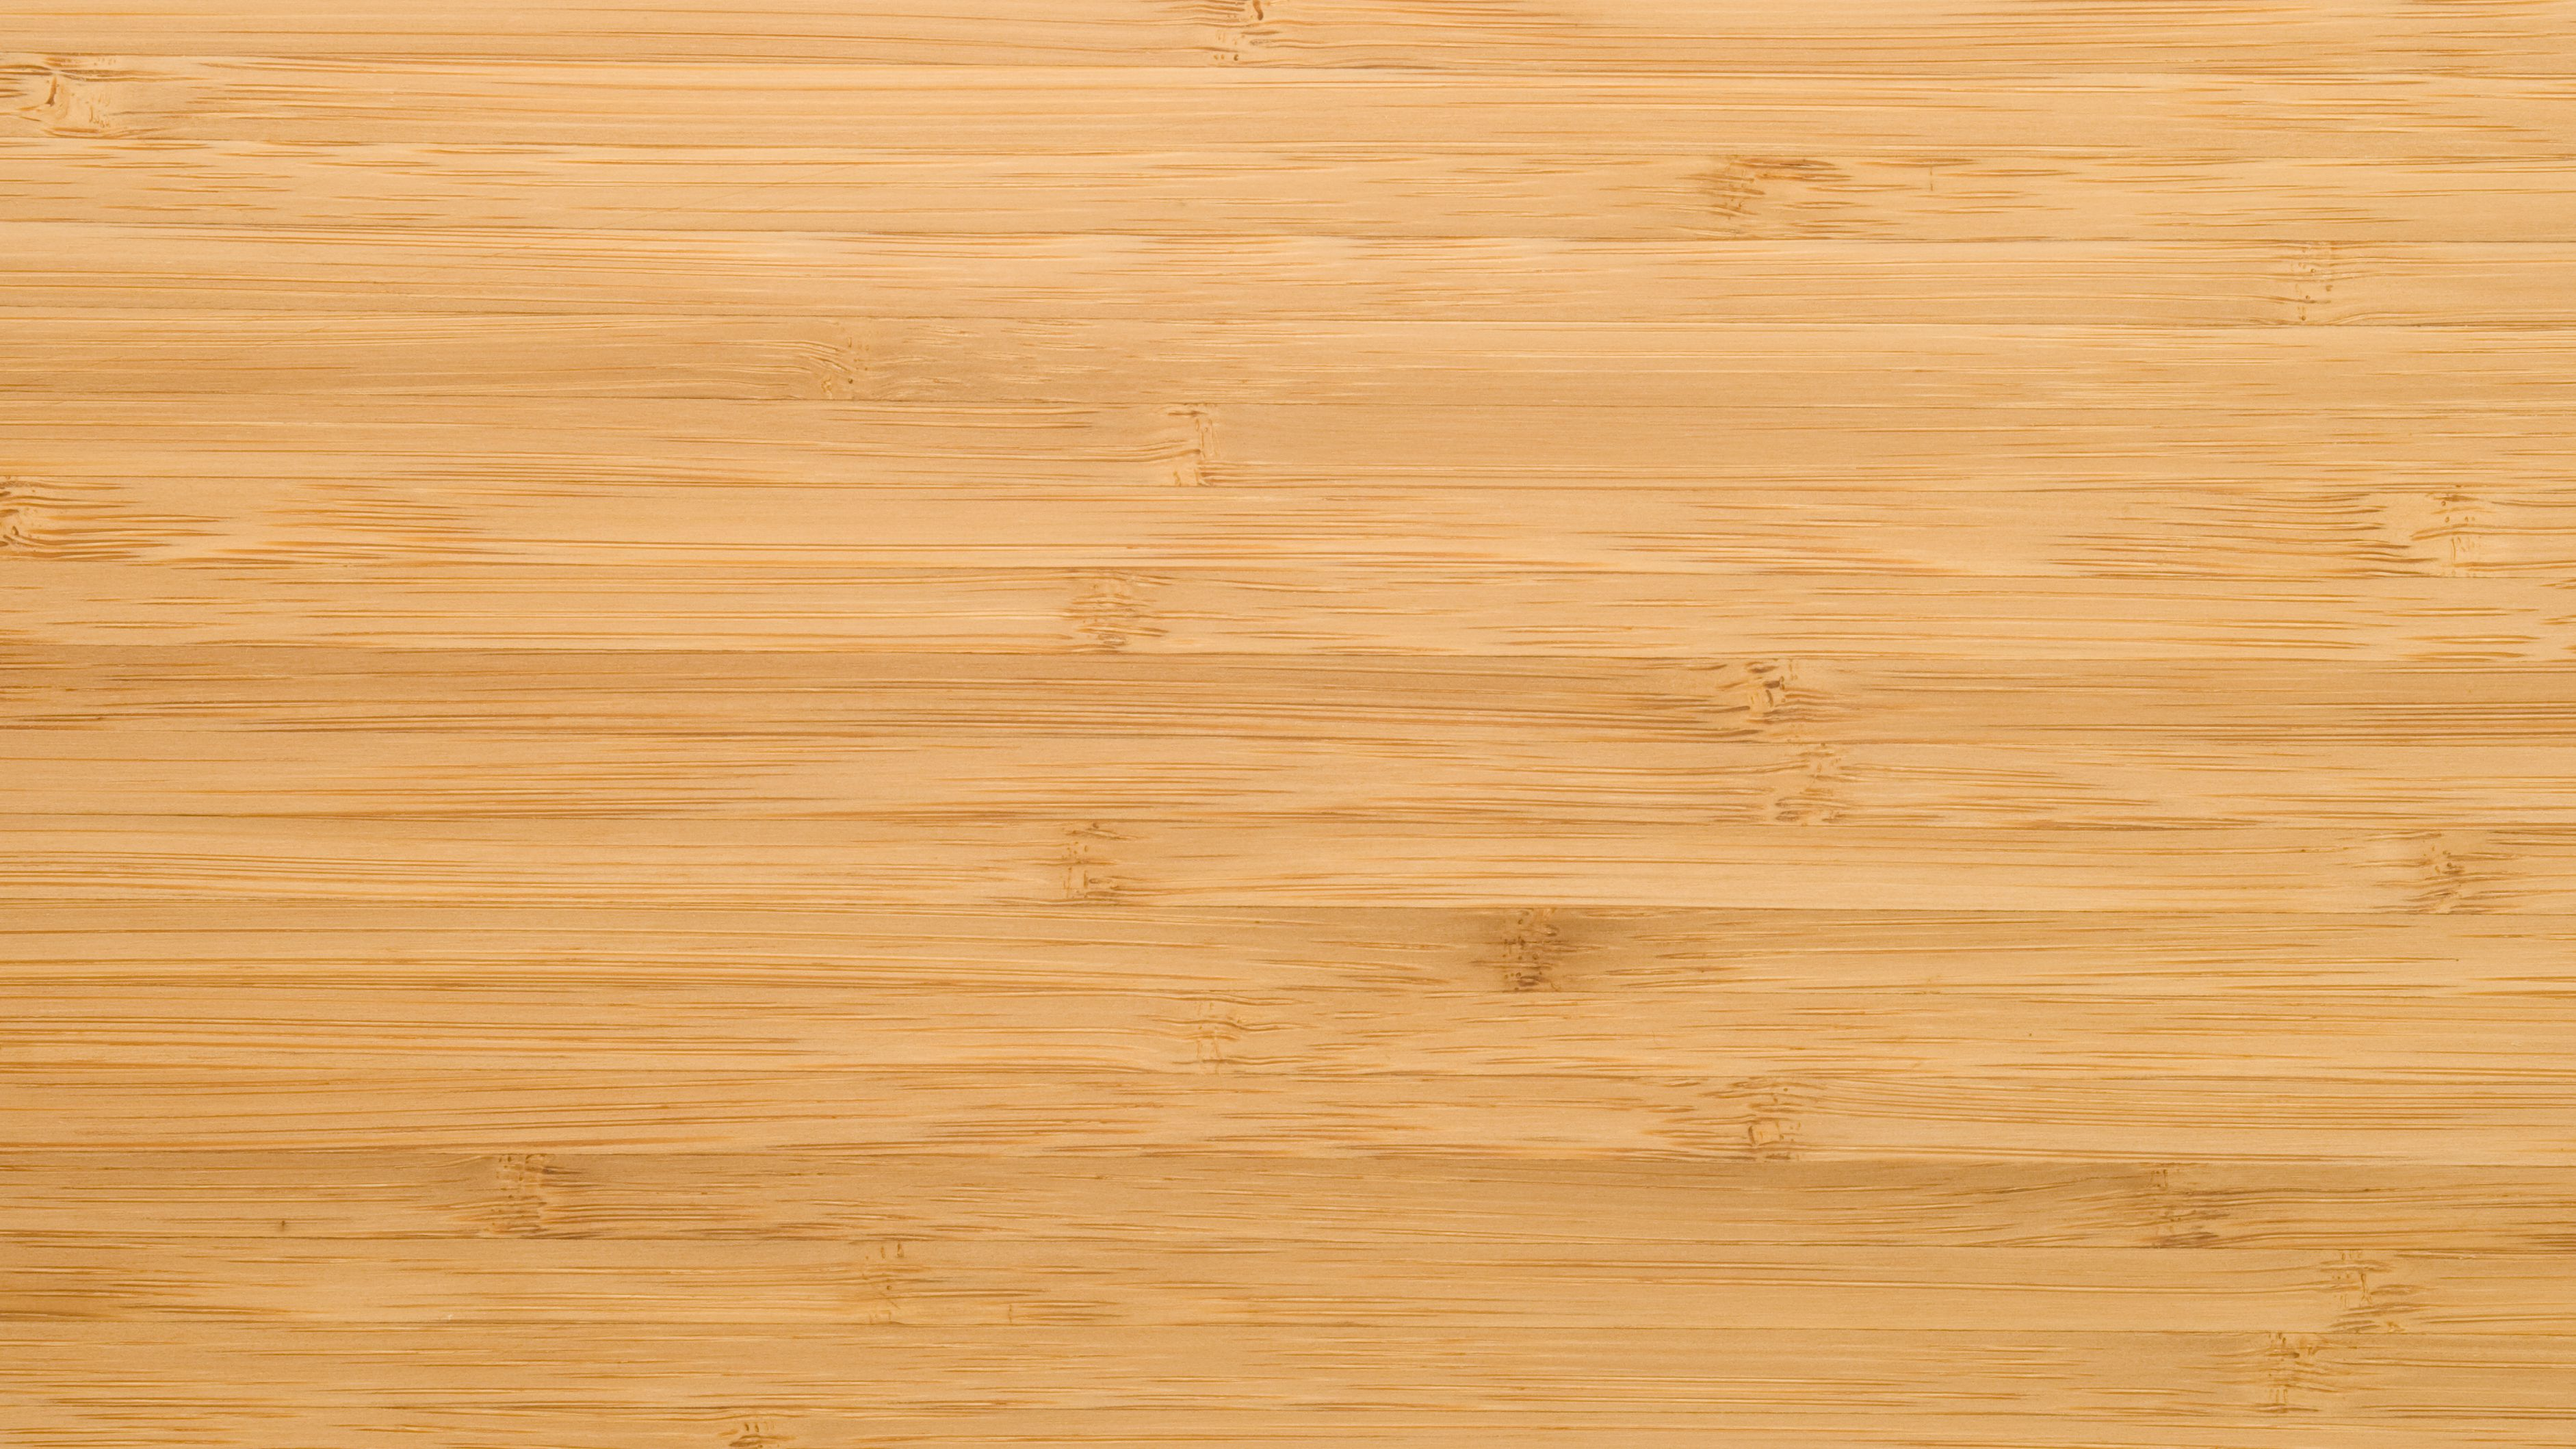 How To Clean And Maintain Bamboo Floors